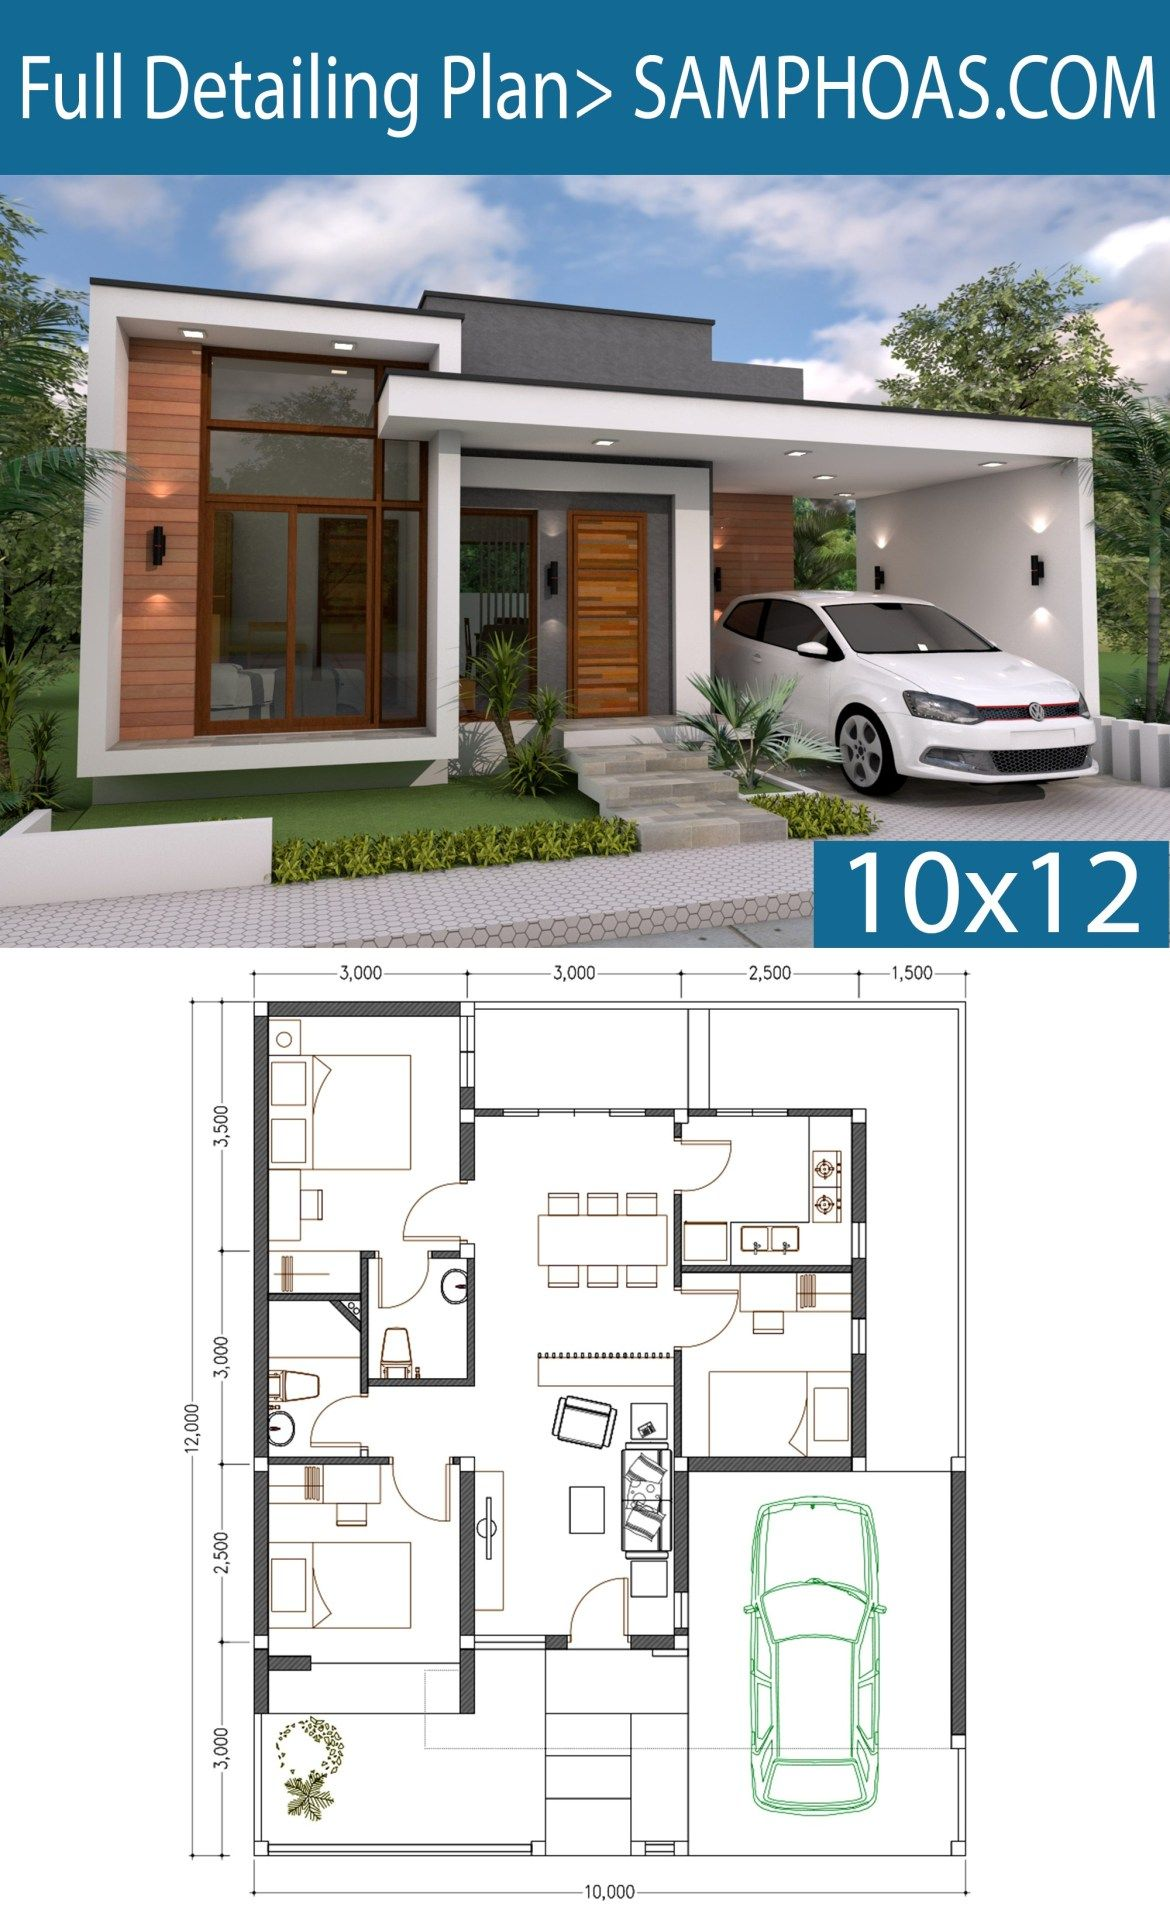 3 Bedrooms Home Design Plan 10x12m Samphoas Plansearch Modern Style House Plans Bungalow House Plans Modern Bungalow House